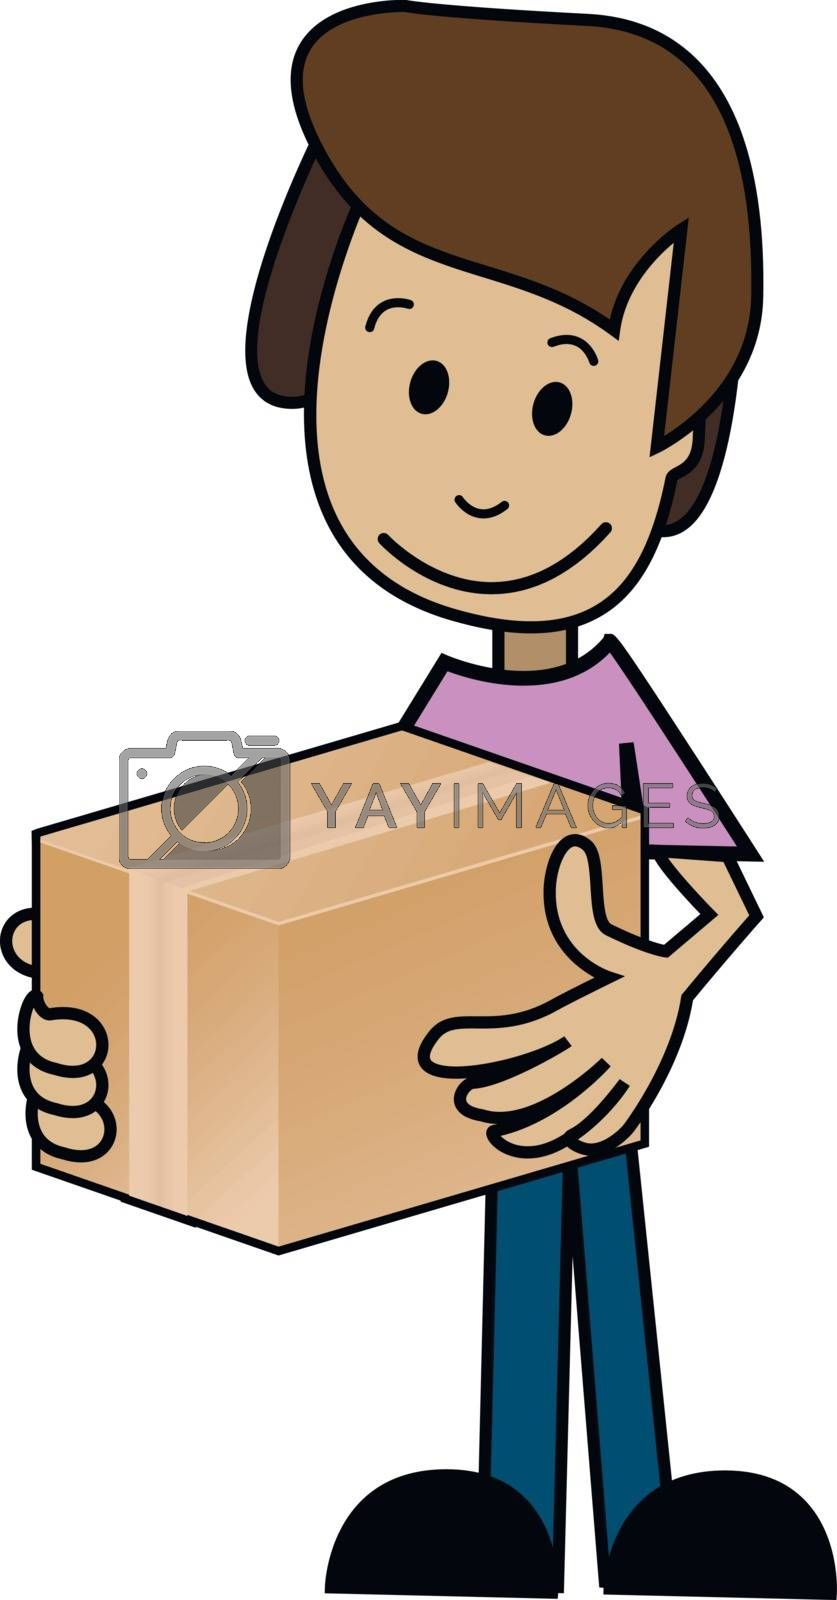 Illustration of a cartoon man with the box